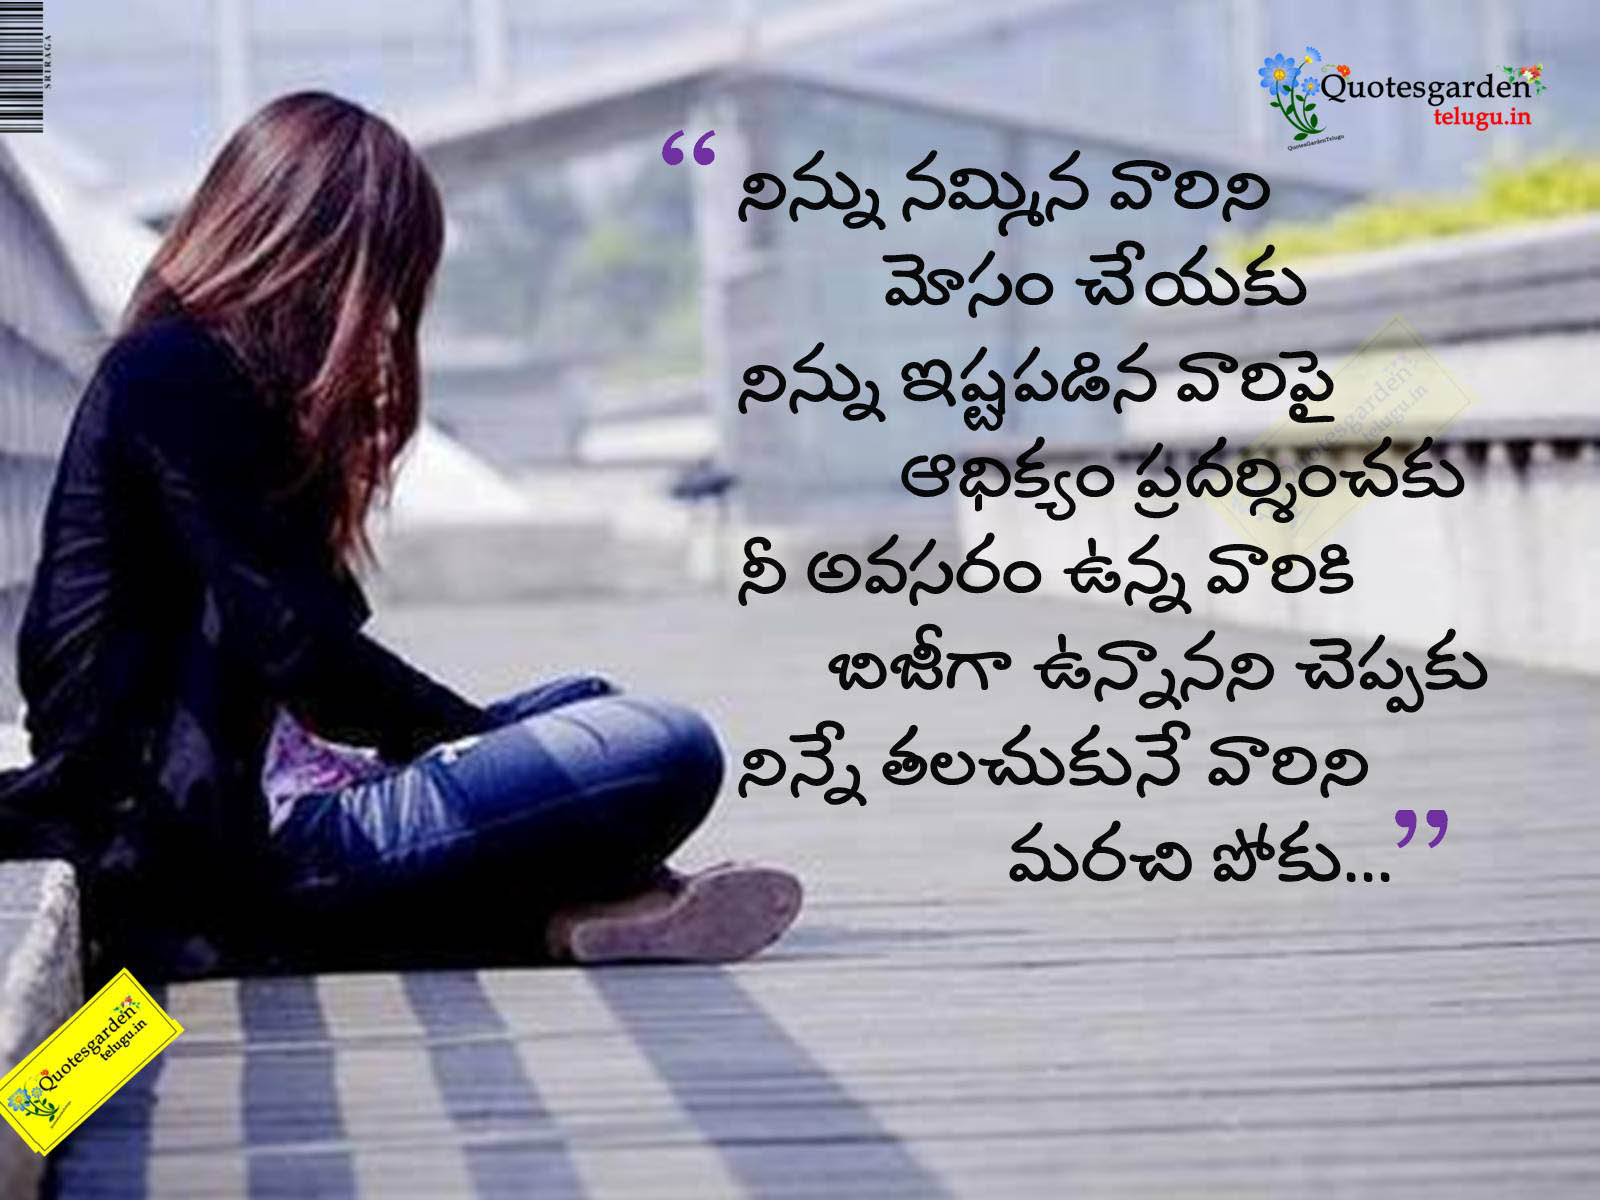 best heart touching love quotes in telugu quotes garden